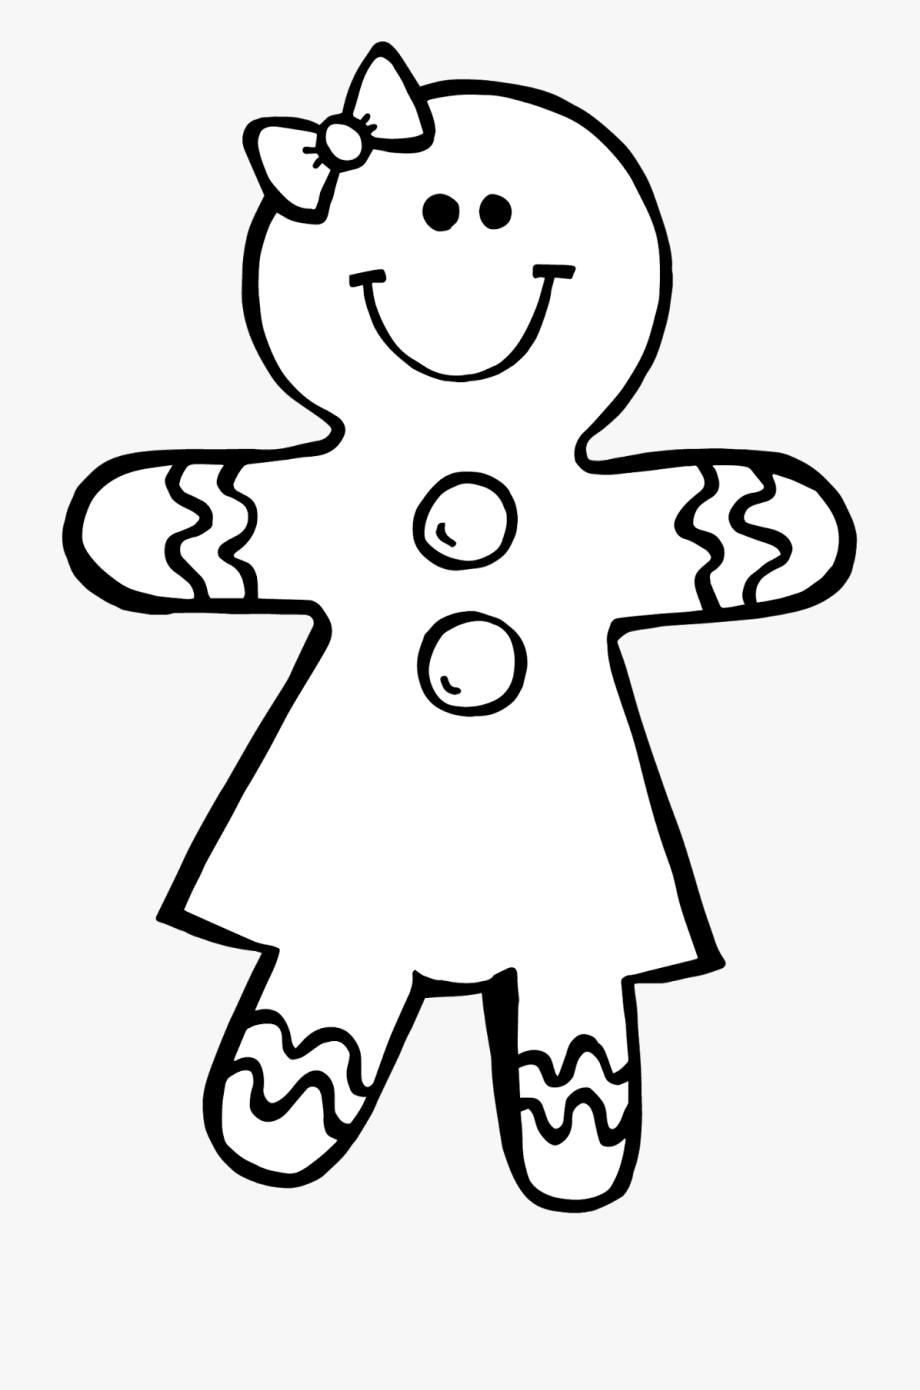 Free Gingerbread Men Clipart Download Clip Art Clever.